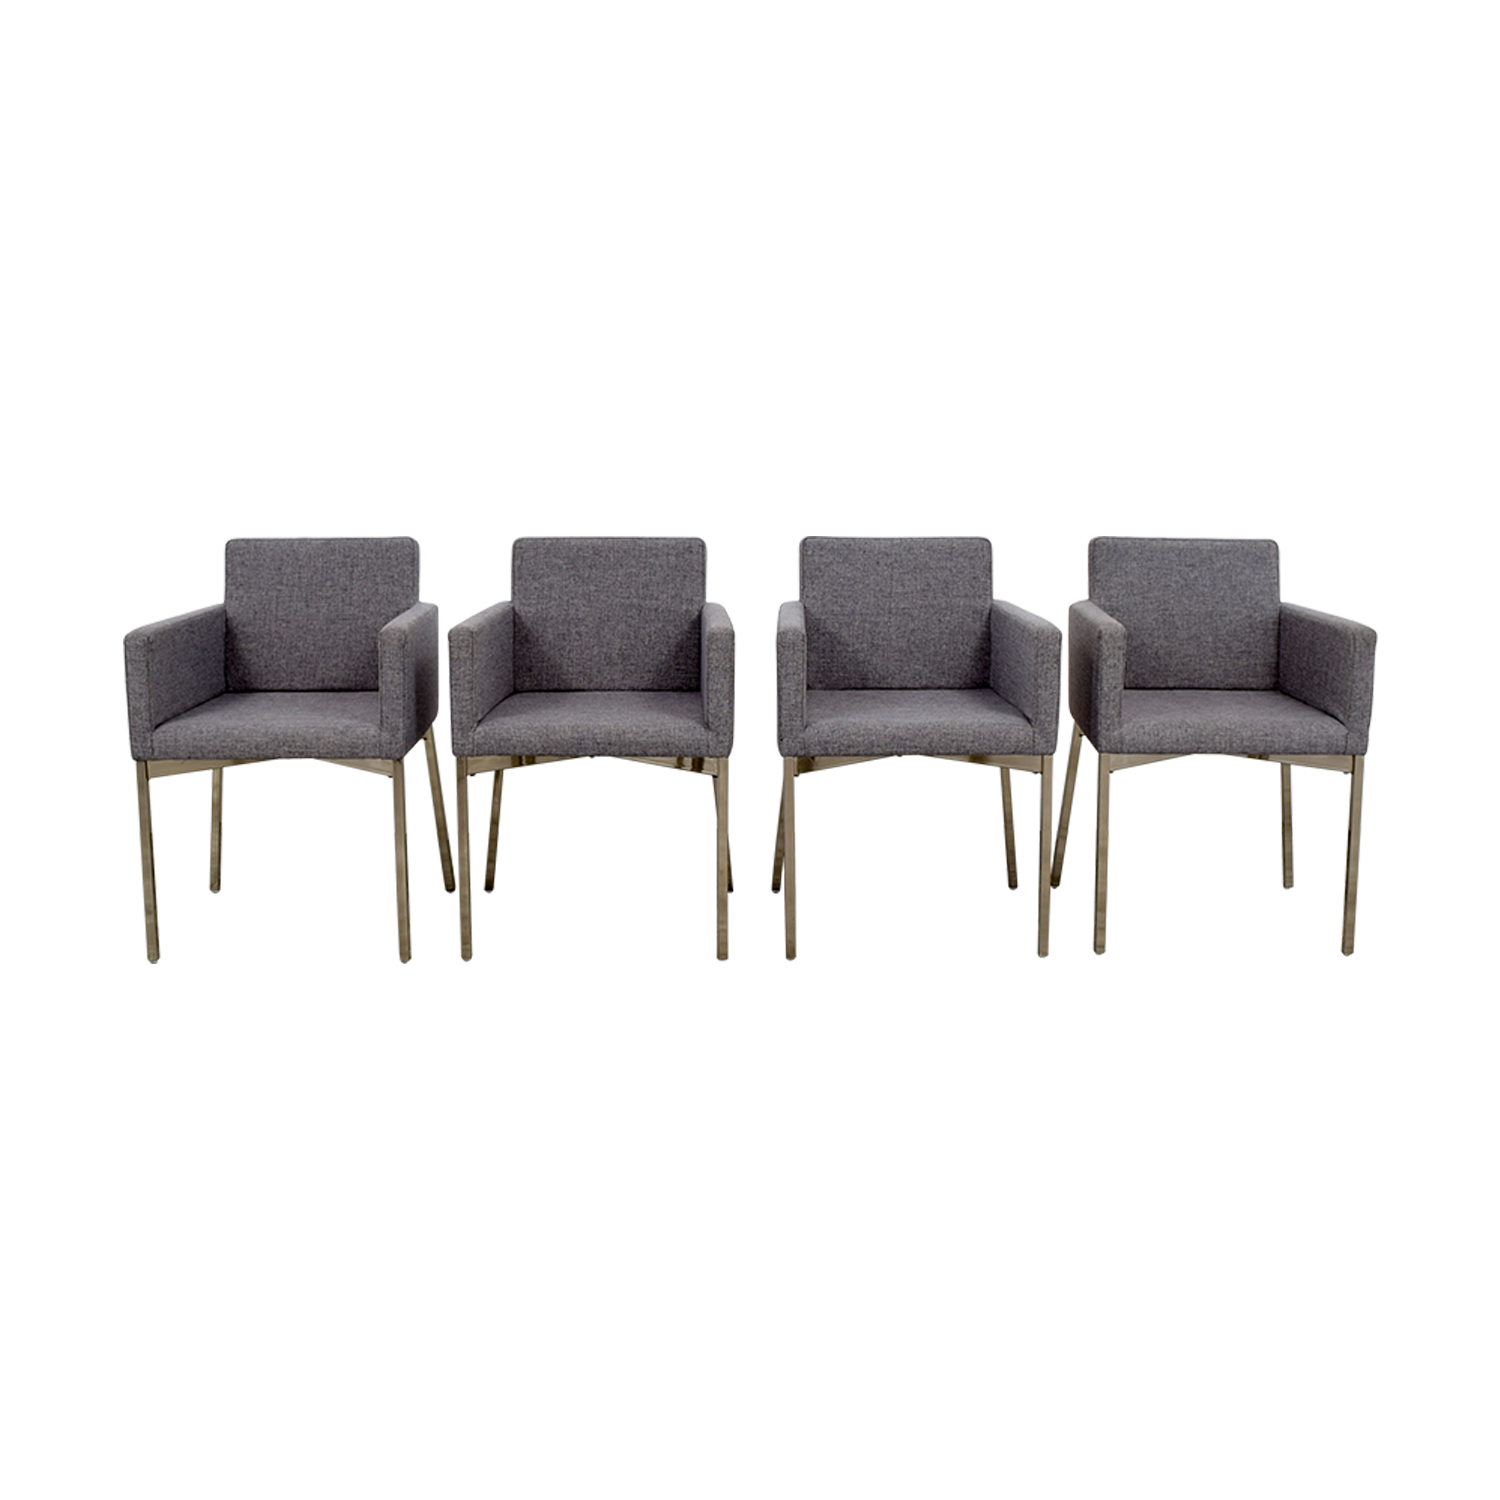 CB2 CB2 Gray Chairs used